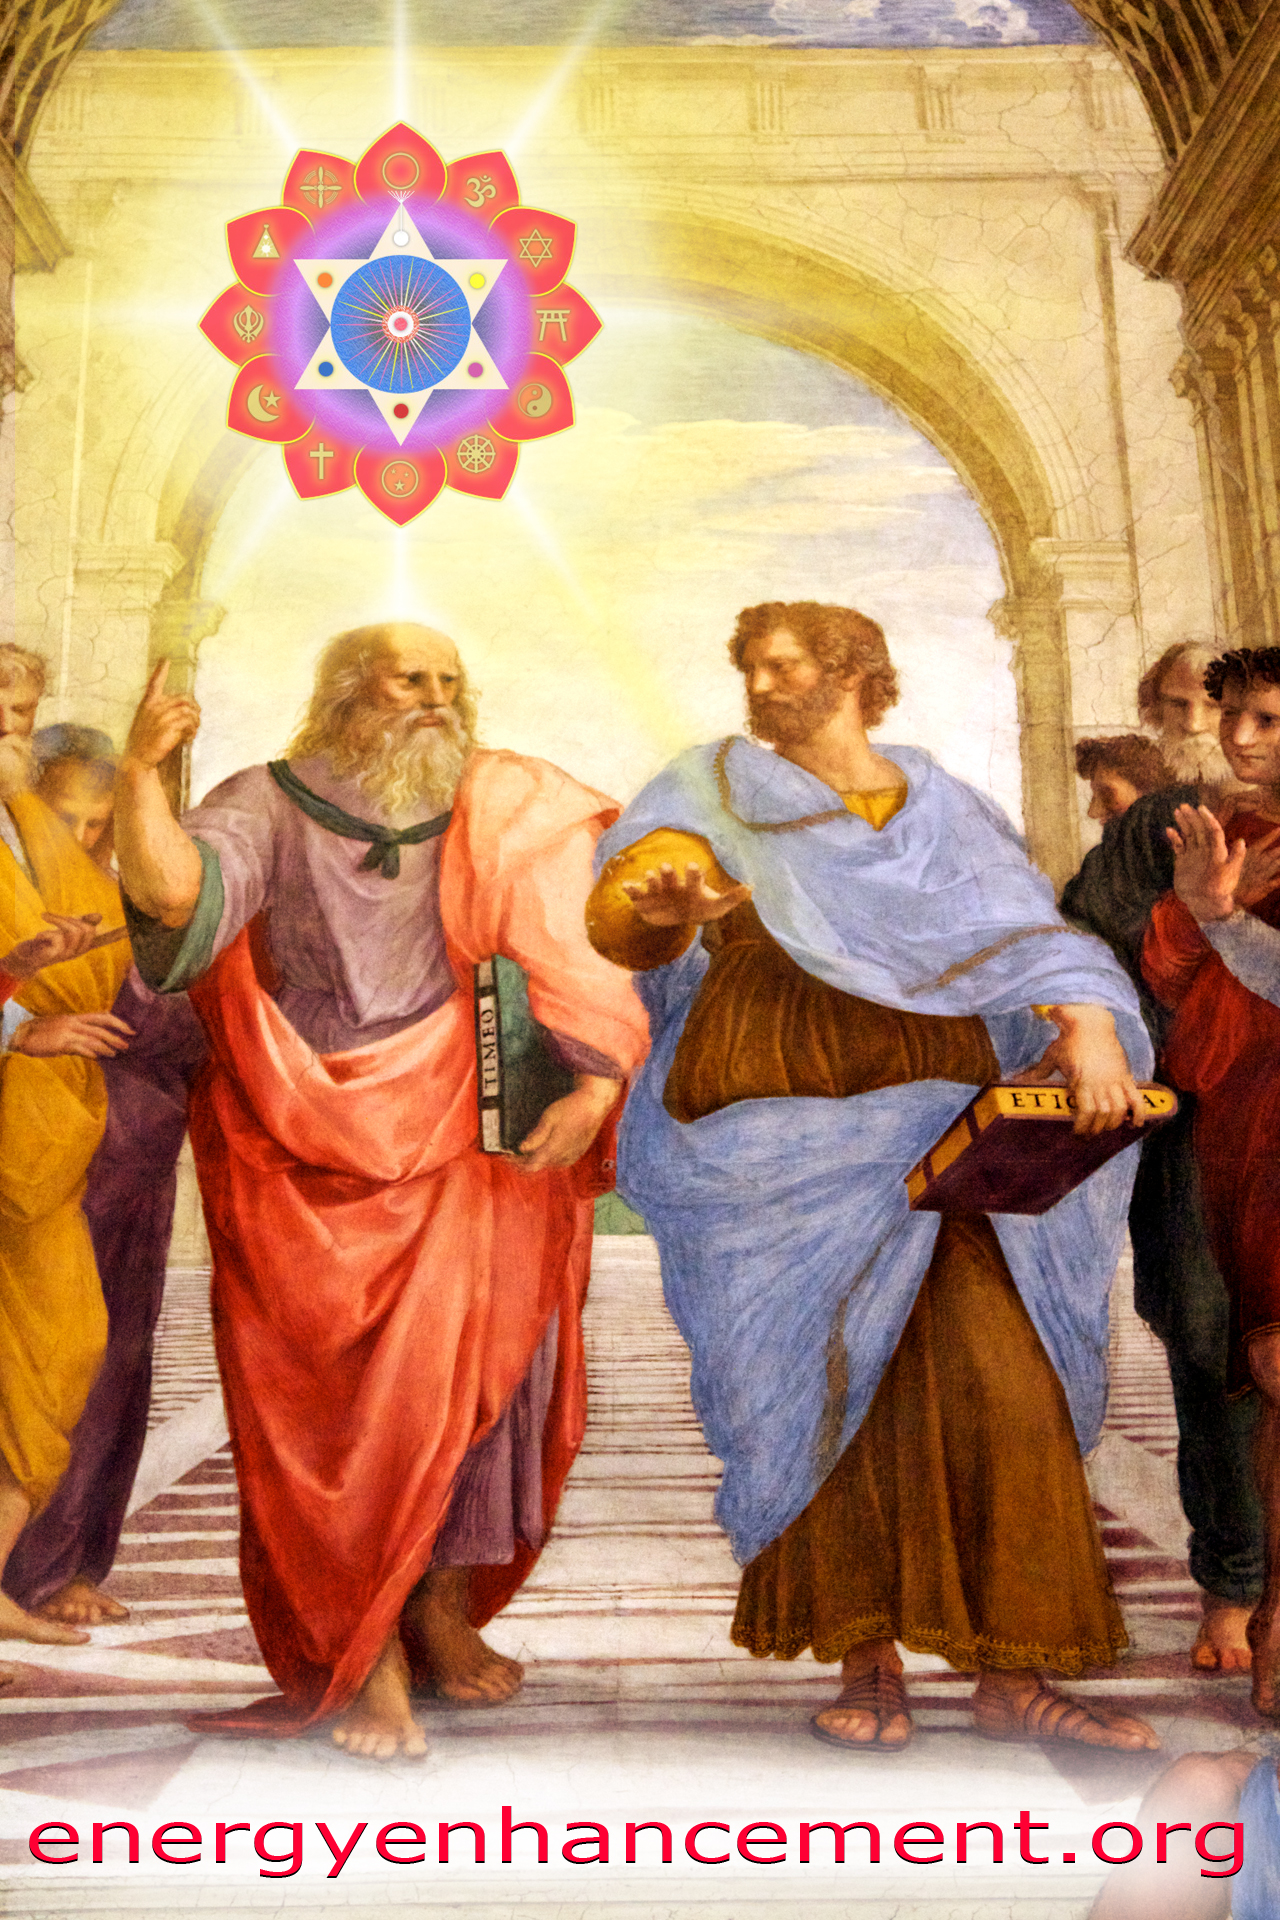 a comparison of thrasymuchus and socrates arguments Because thrasymachus is already frustrated and disoriented by socrates' eloquent speech, he fails to notice the flaws in socrates' own argument.